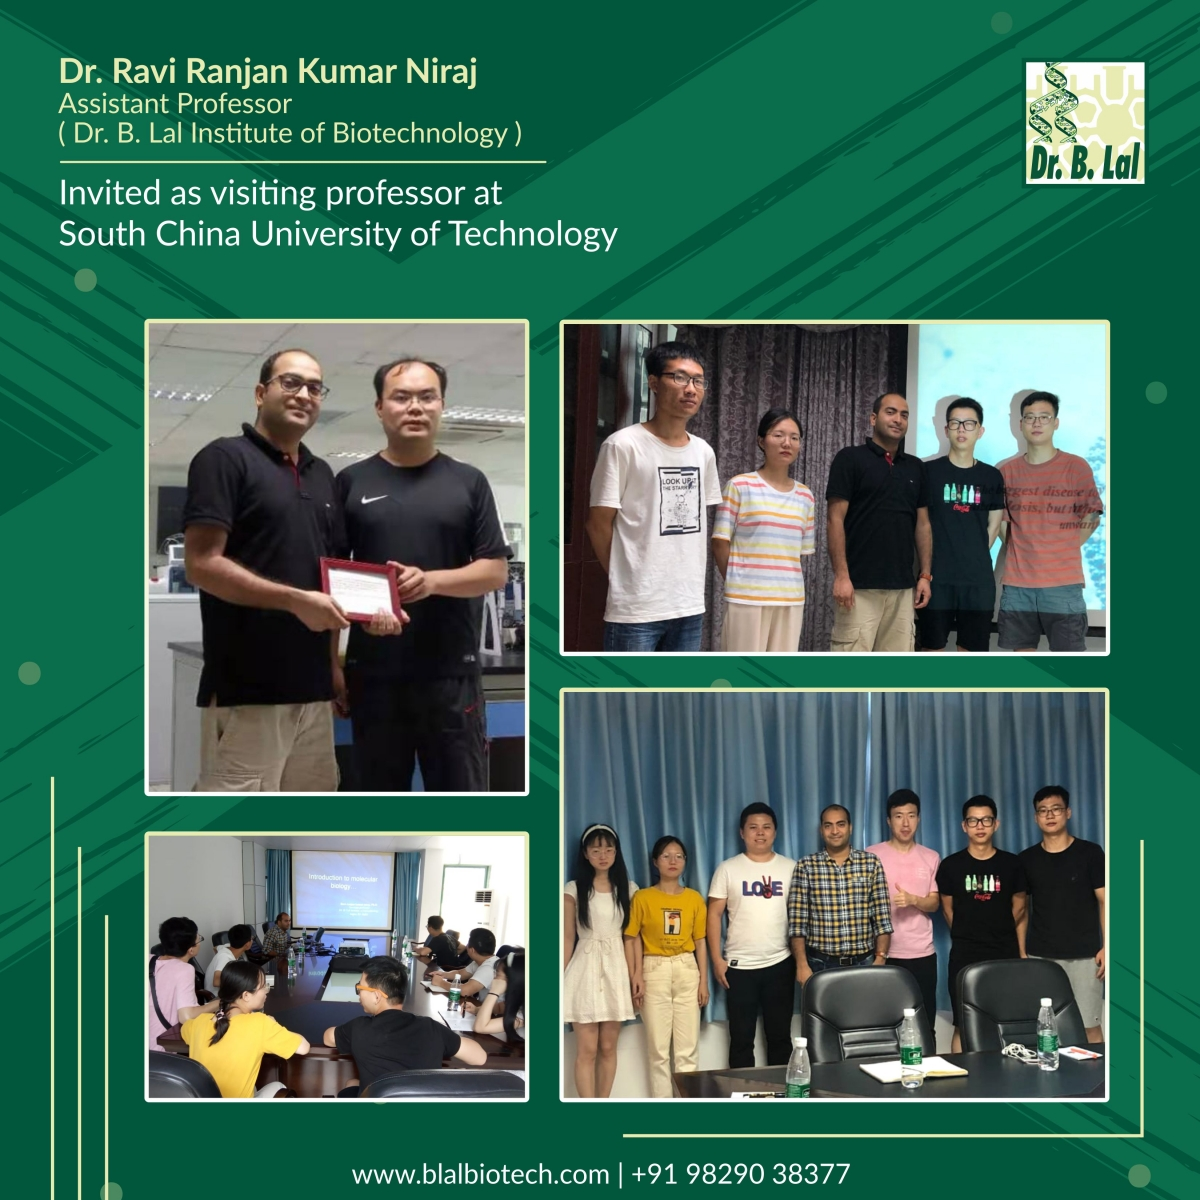 Dr. Ravi Ranjan invited as visiting professor by South China University of Technology